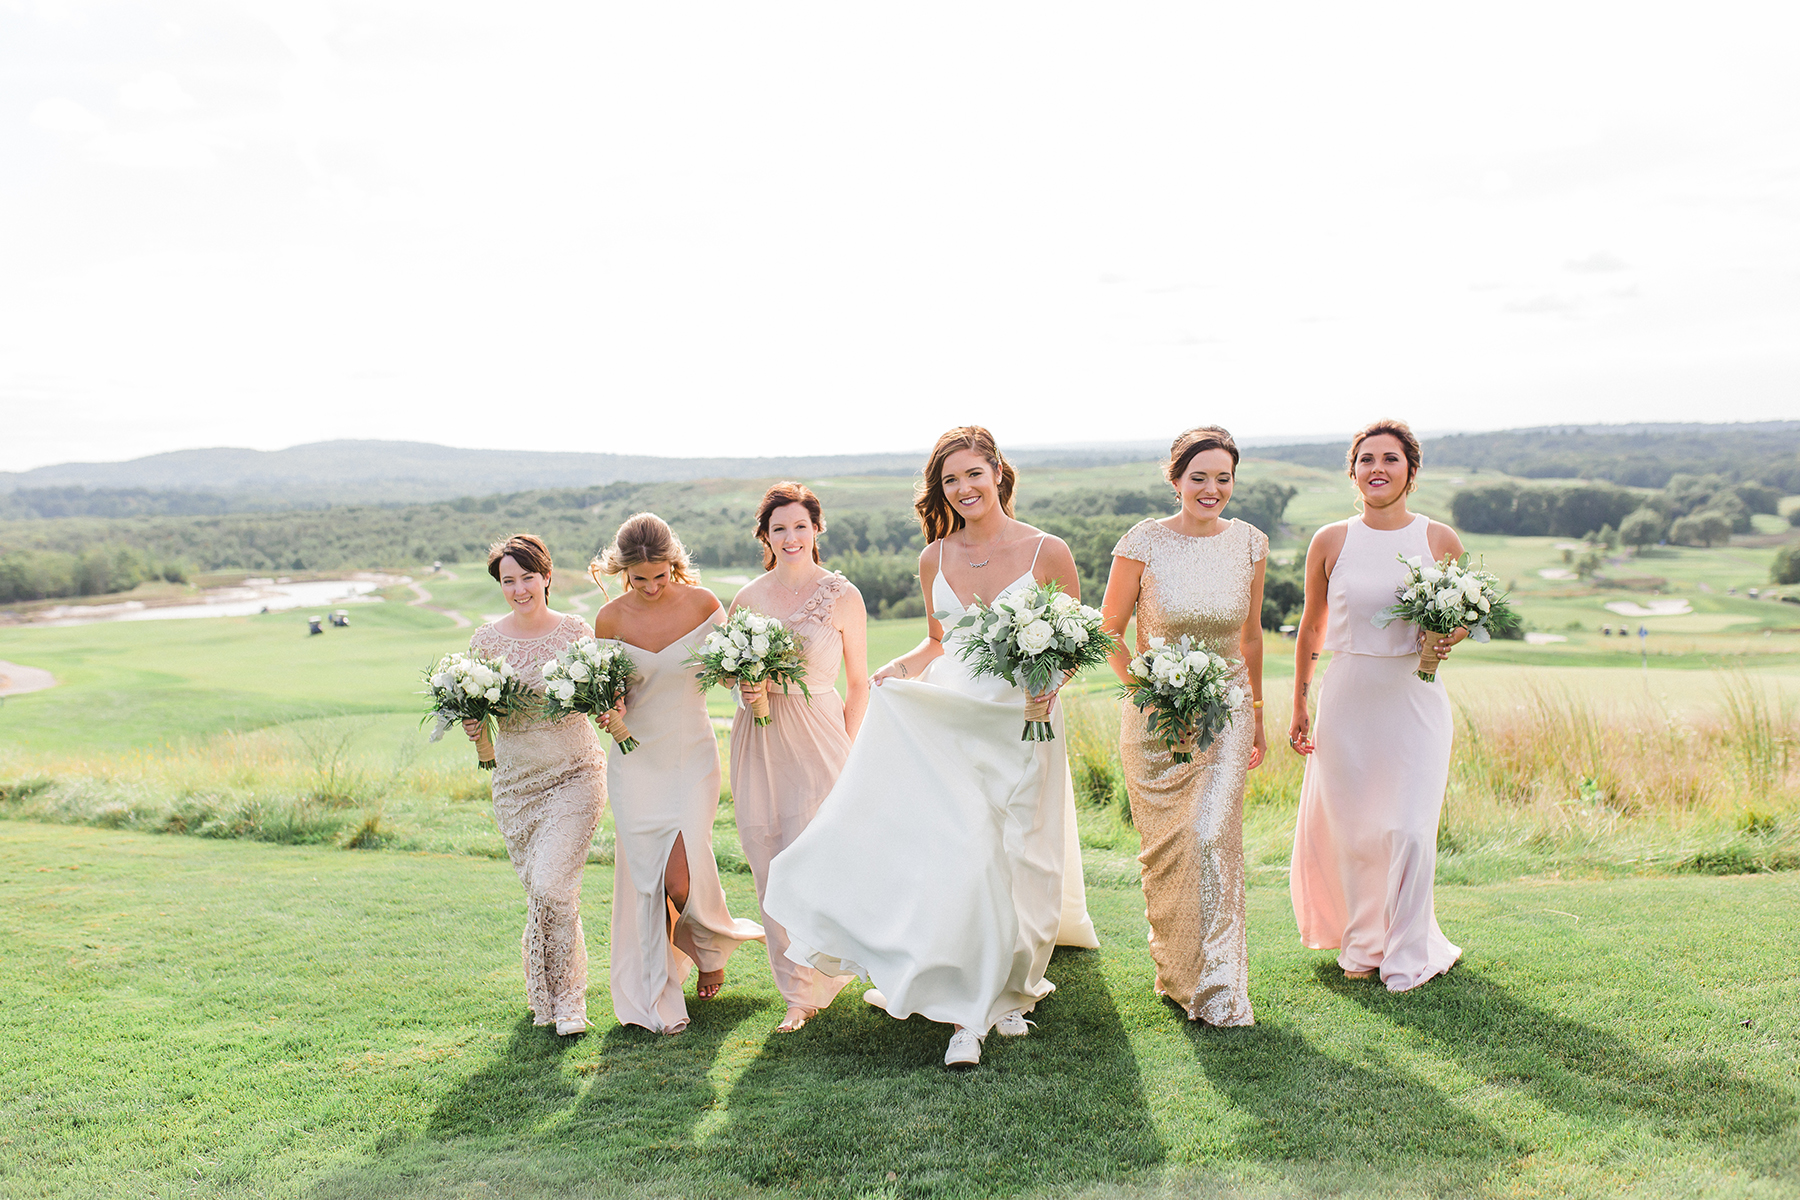 20-quincy-granite-links-wedding-boston.jpg